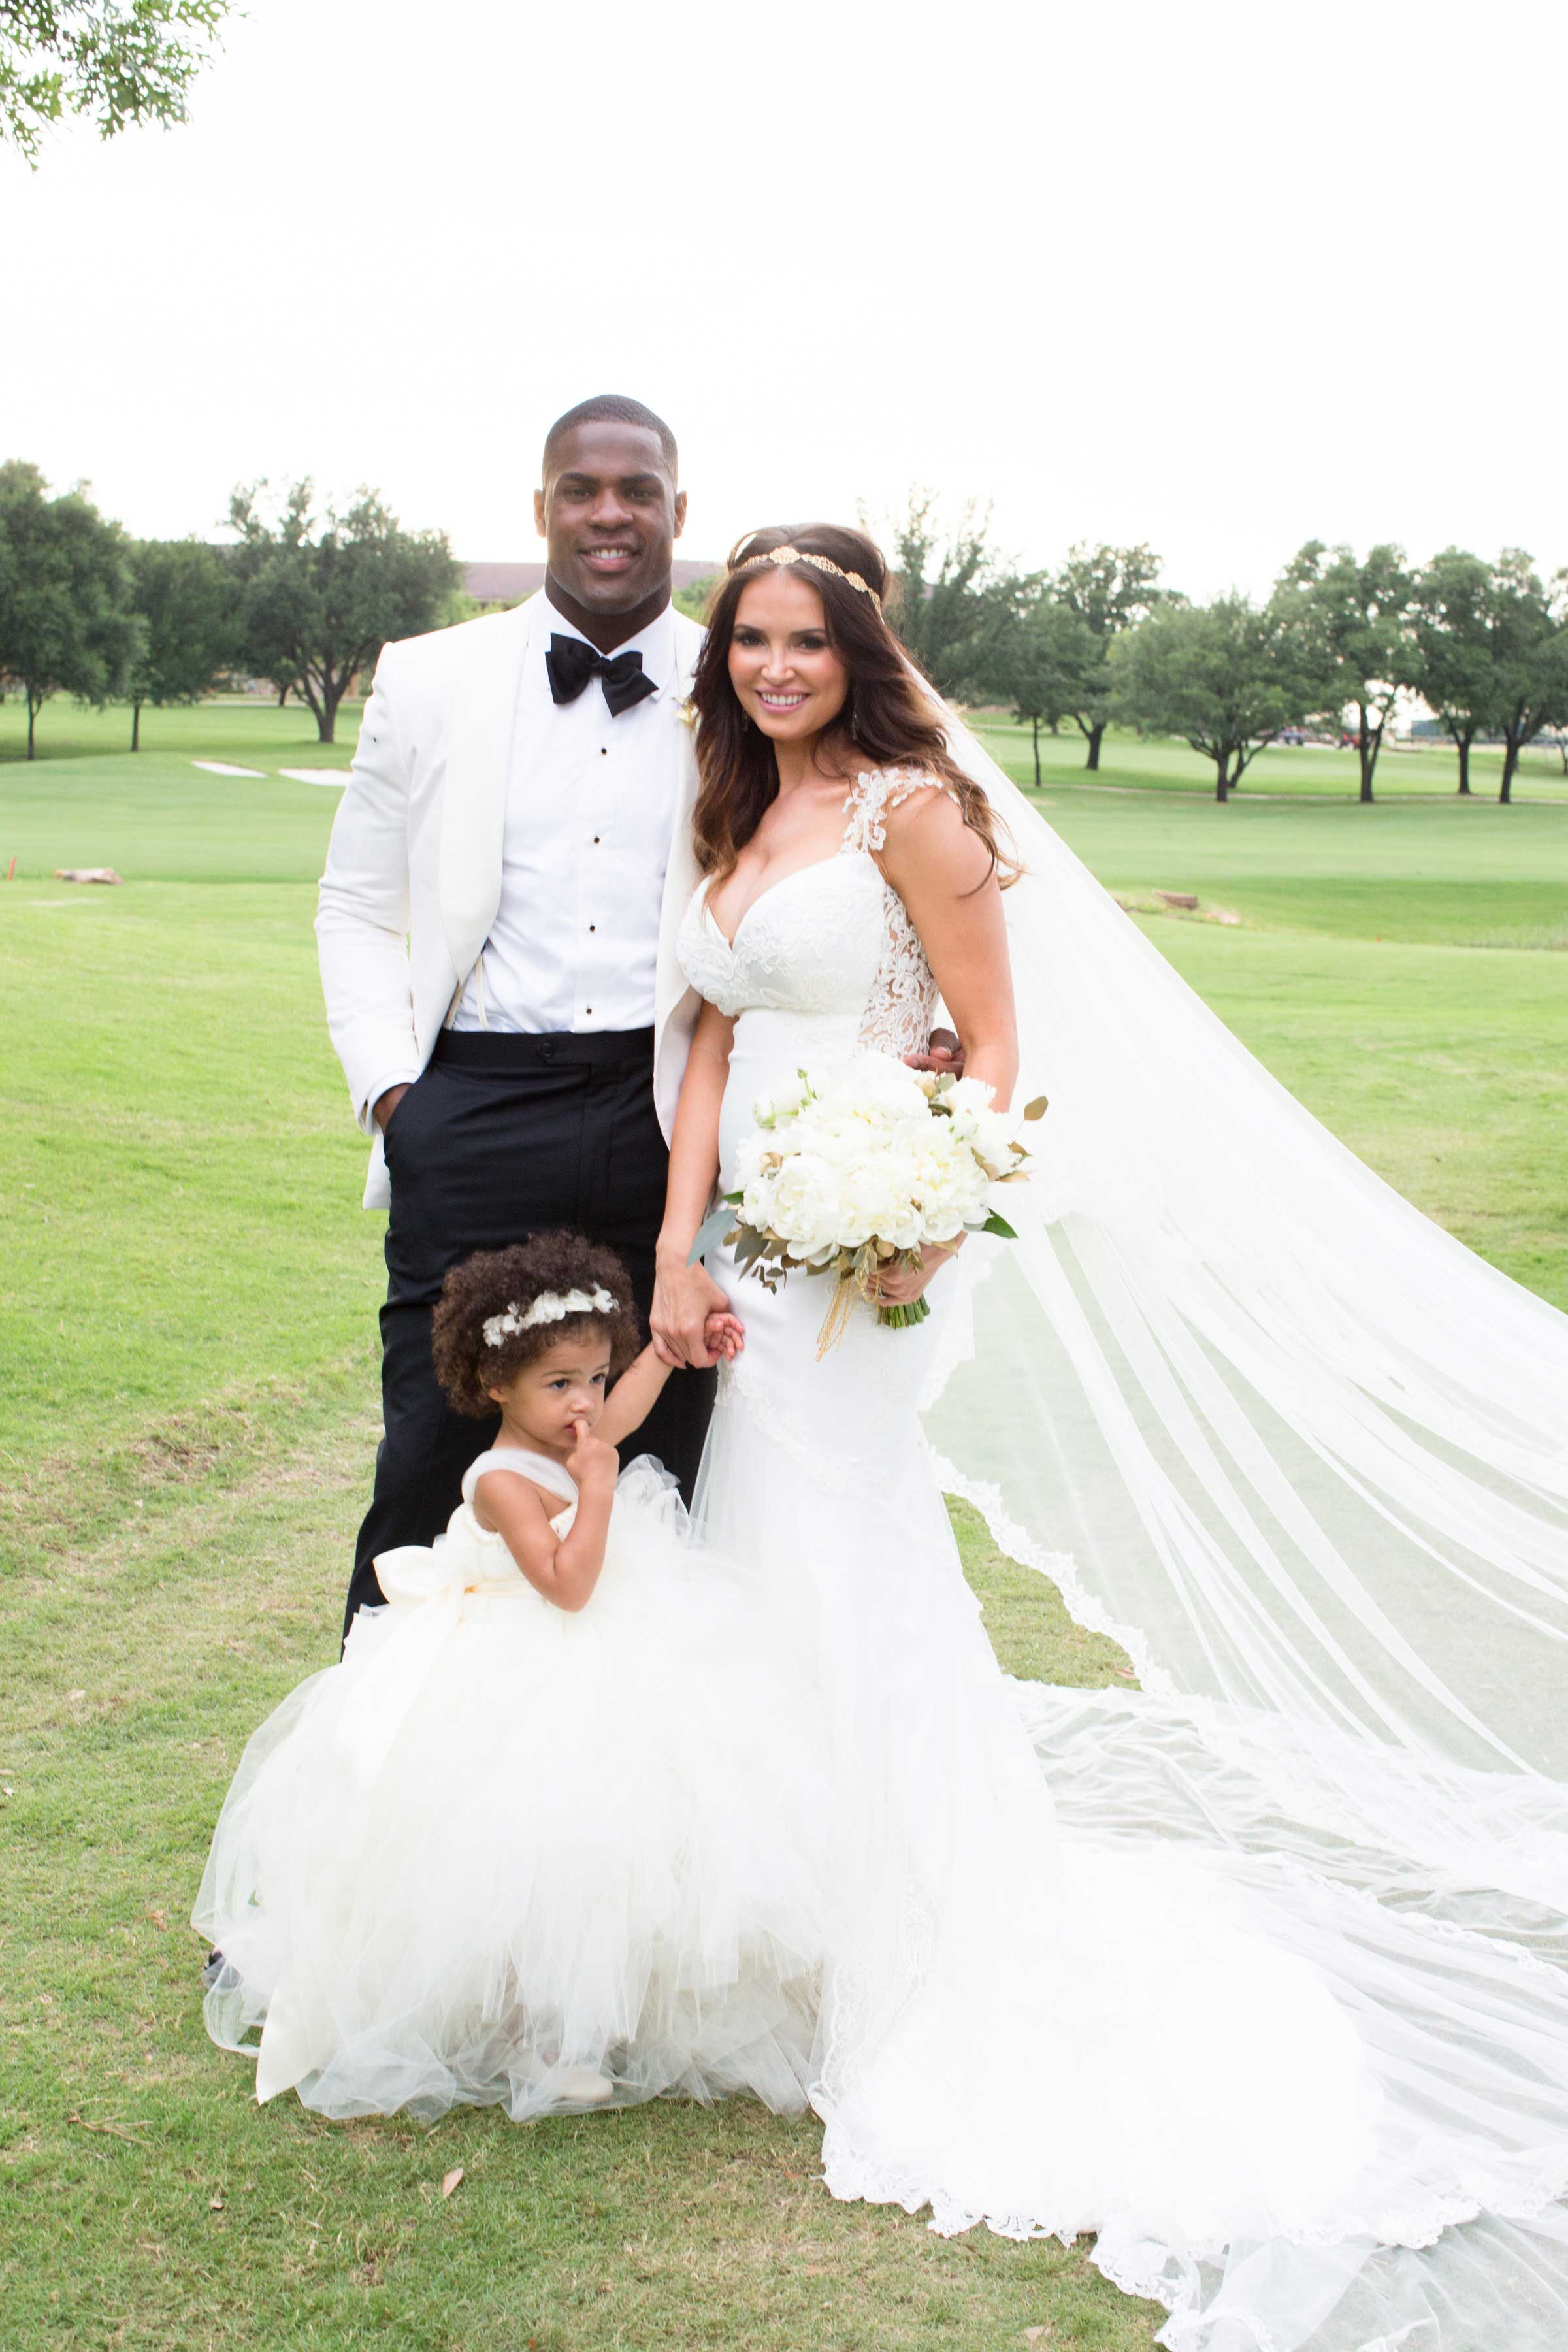 DeMarco Murray and Heidi Mueller wedding photo